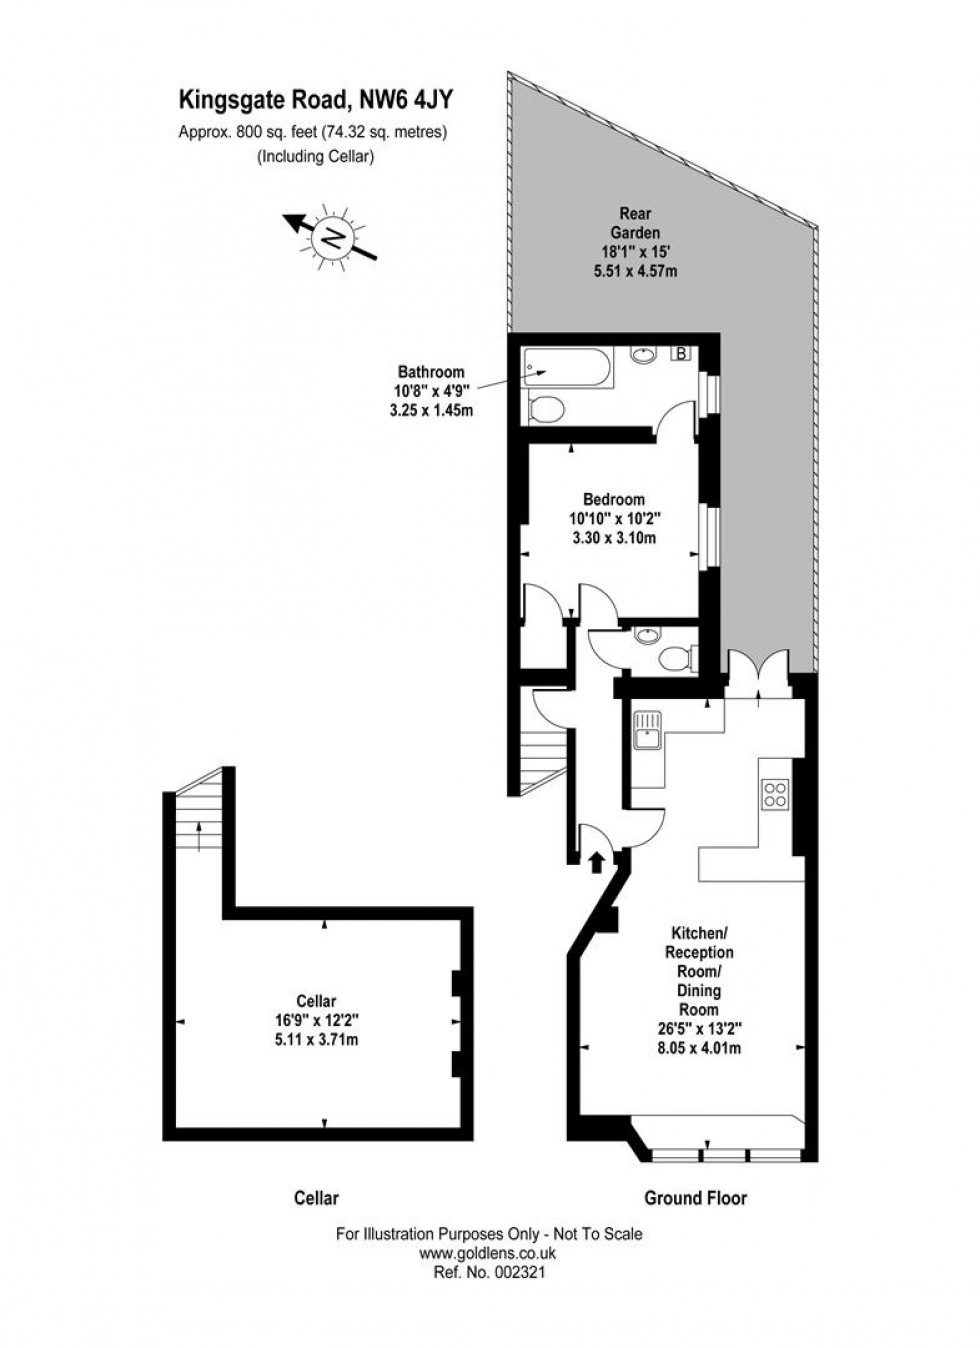 Floorplan for Kingsgate Road, West Hampstead, London